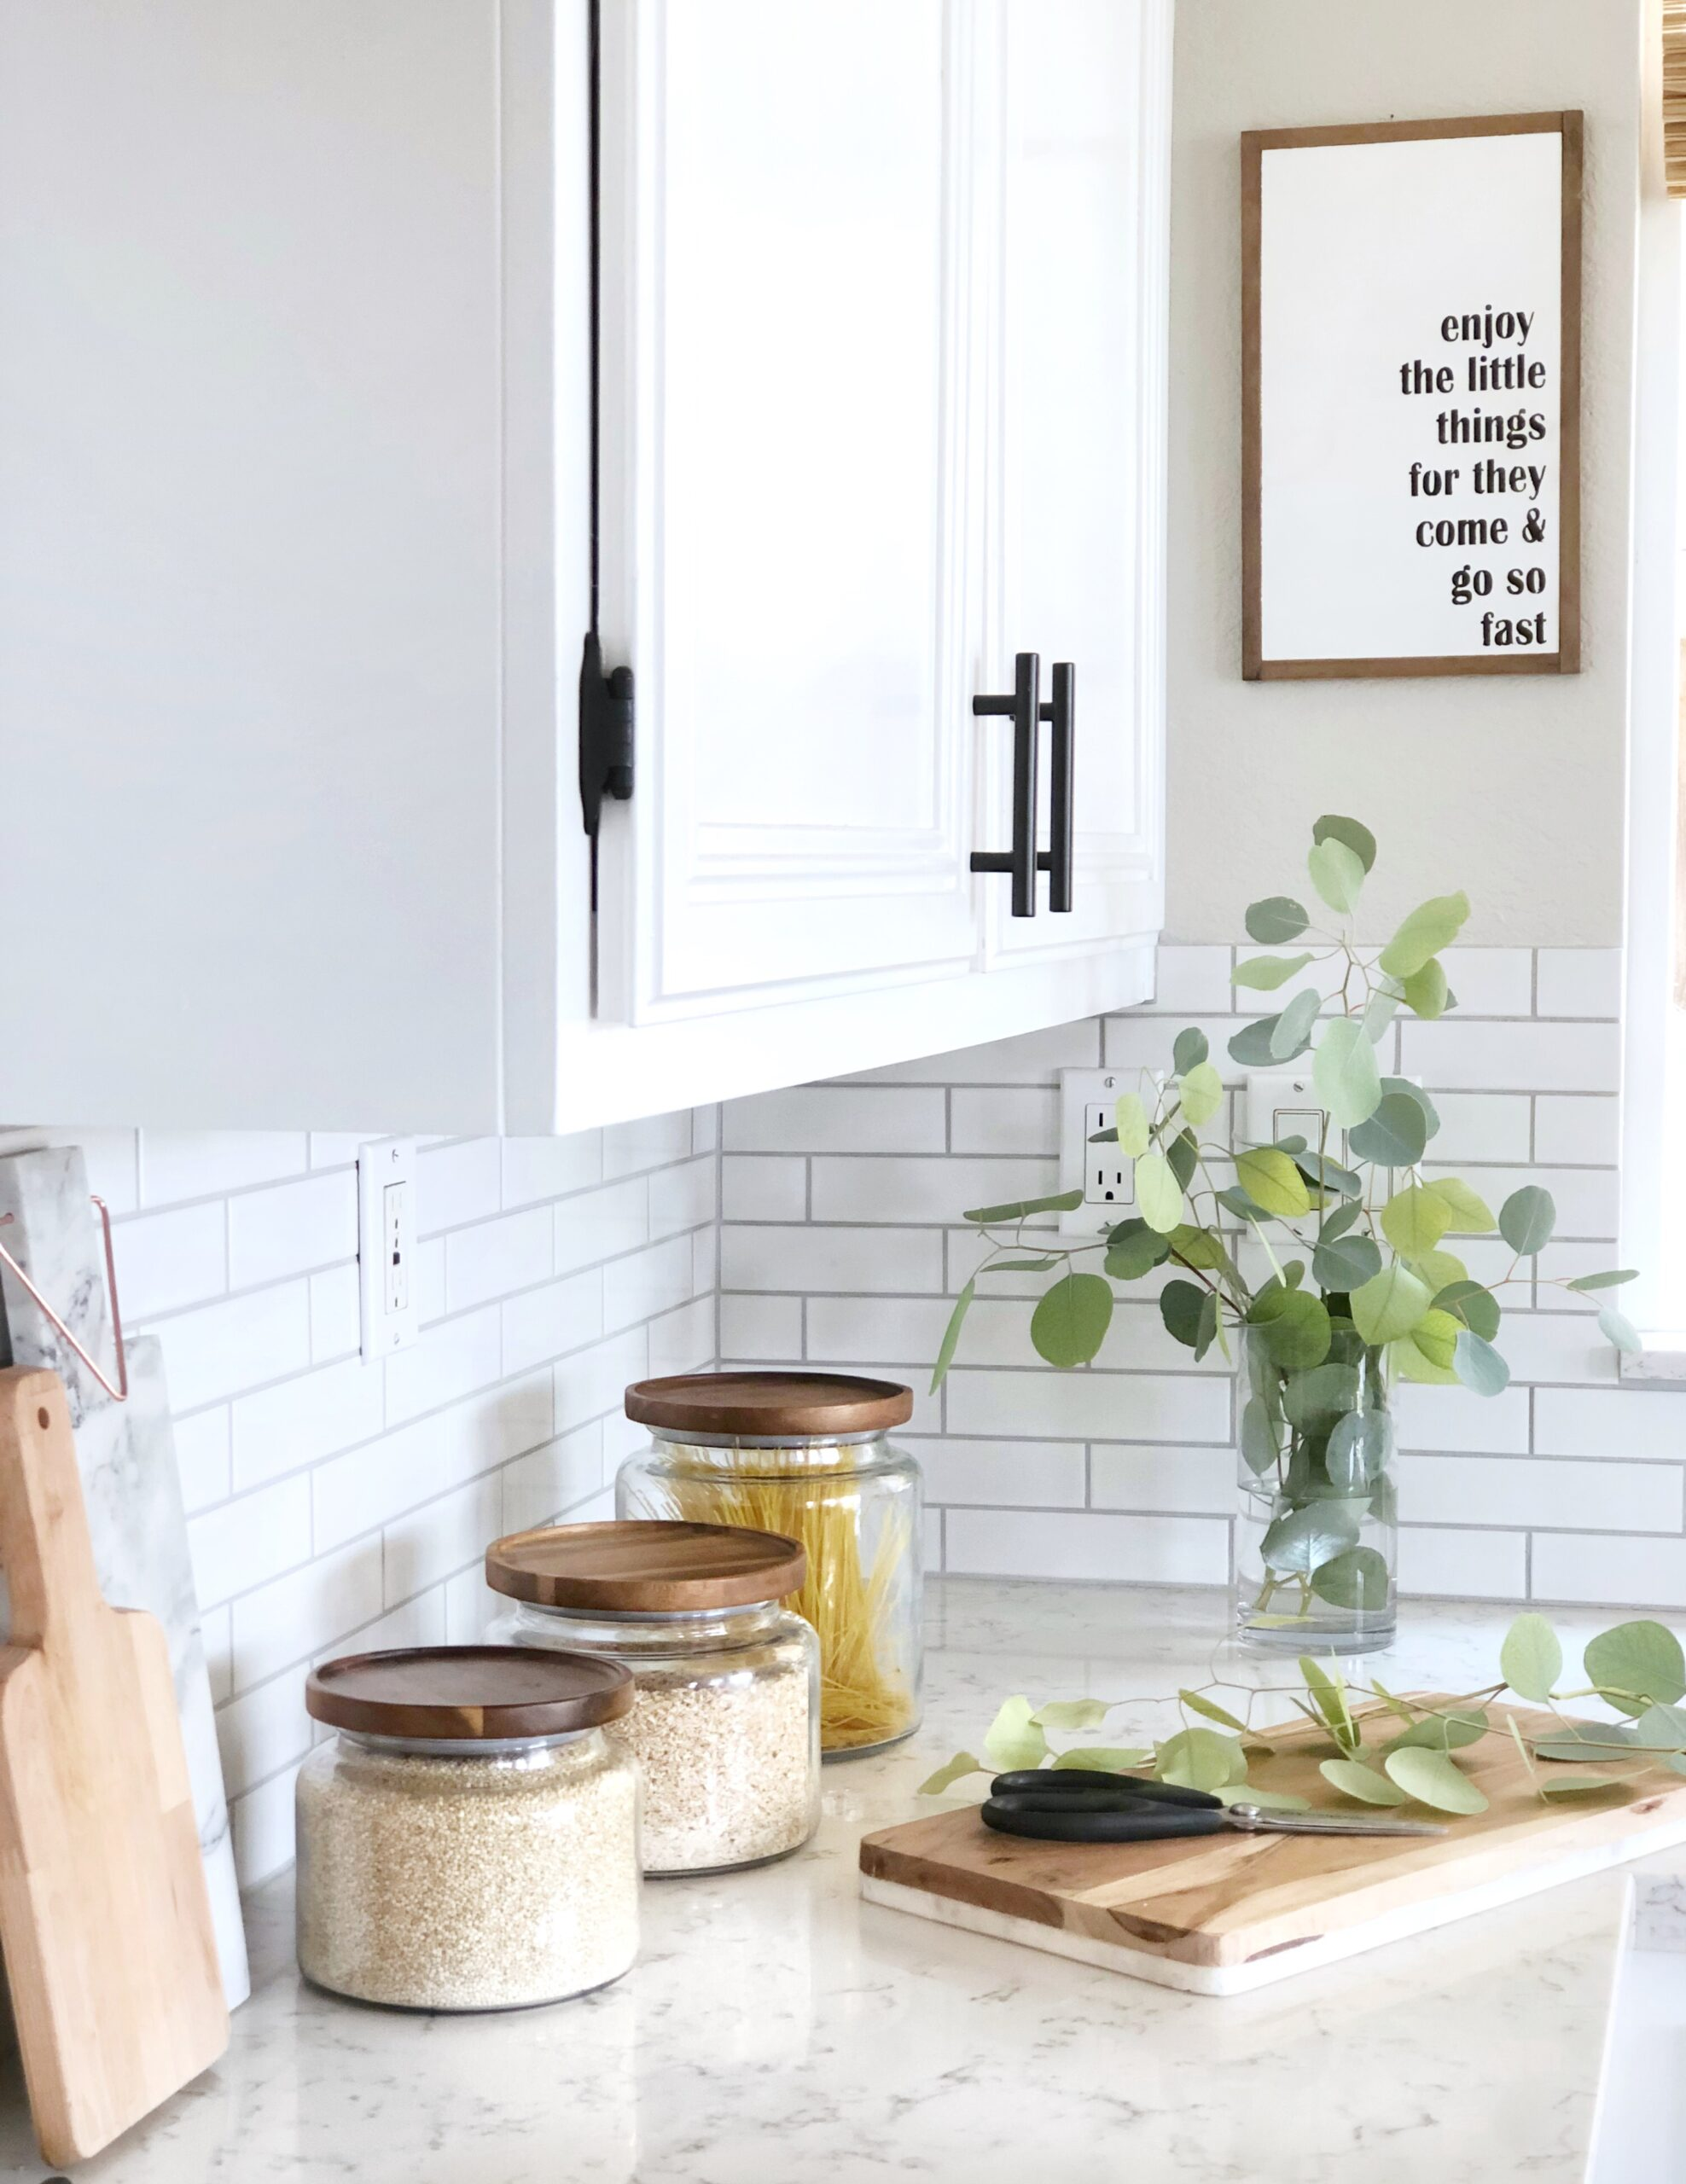 Decor Items In My Home Right Now That I LOVE & You Will Too